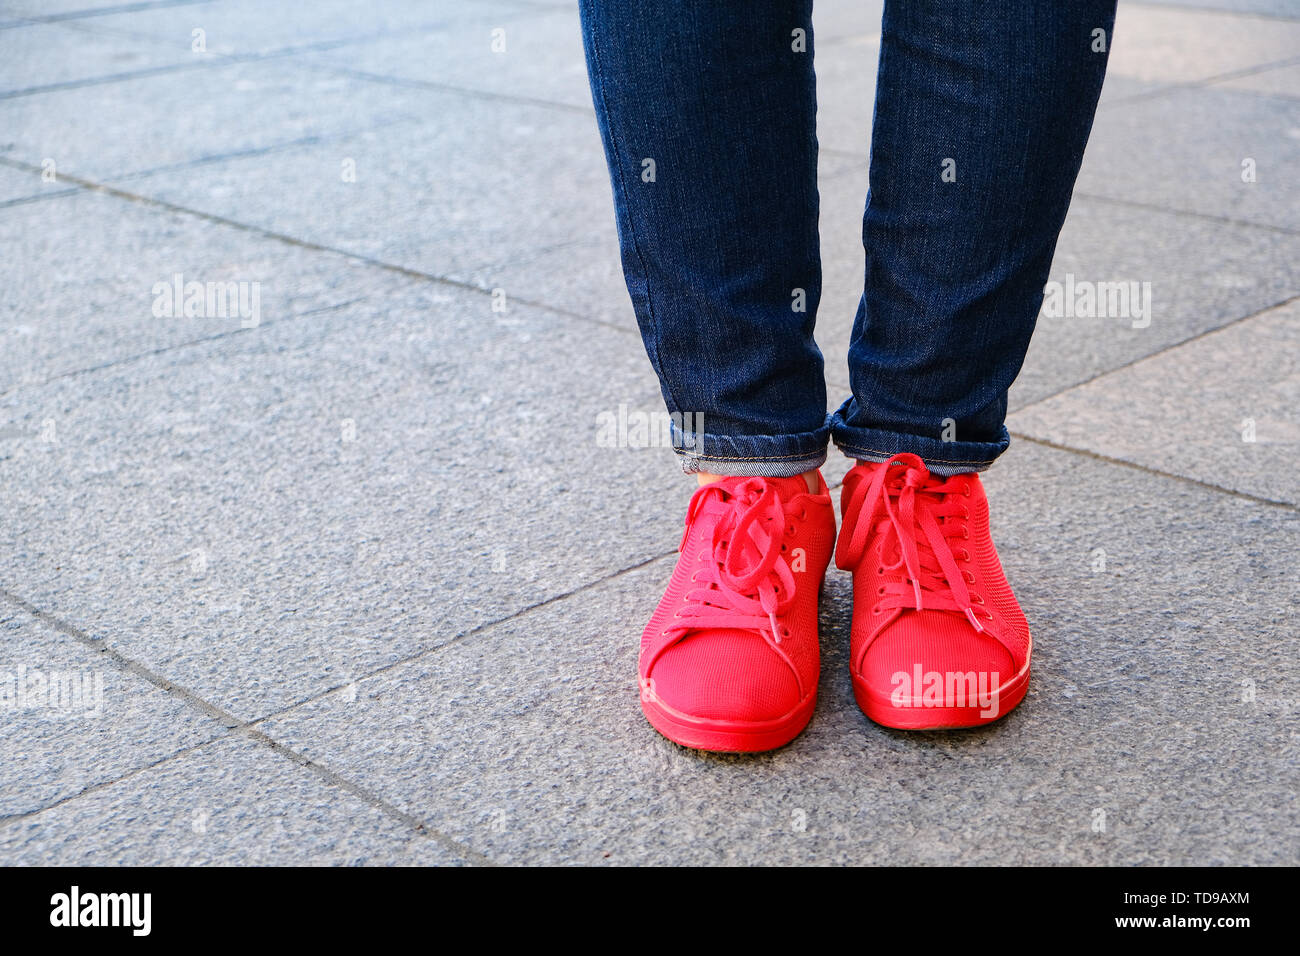 shoes. Red sneakers and jeans. Waiting